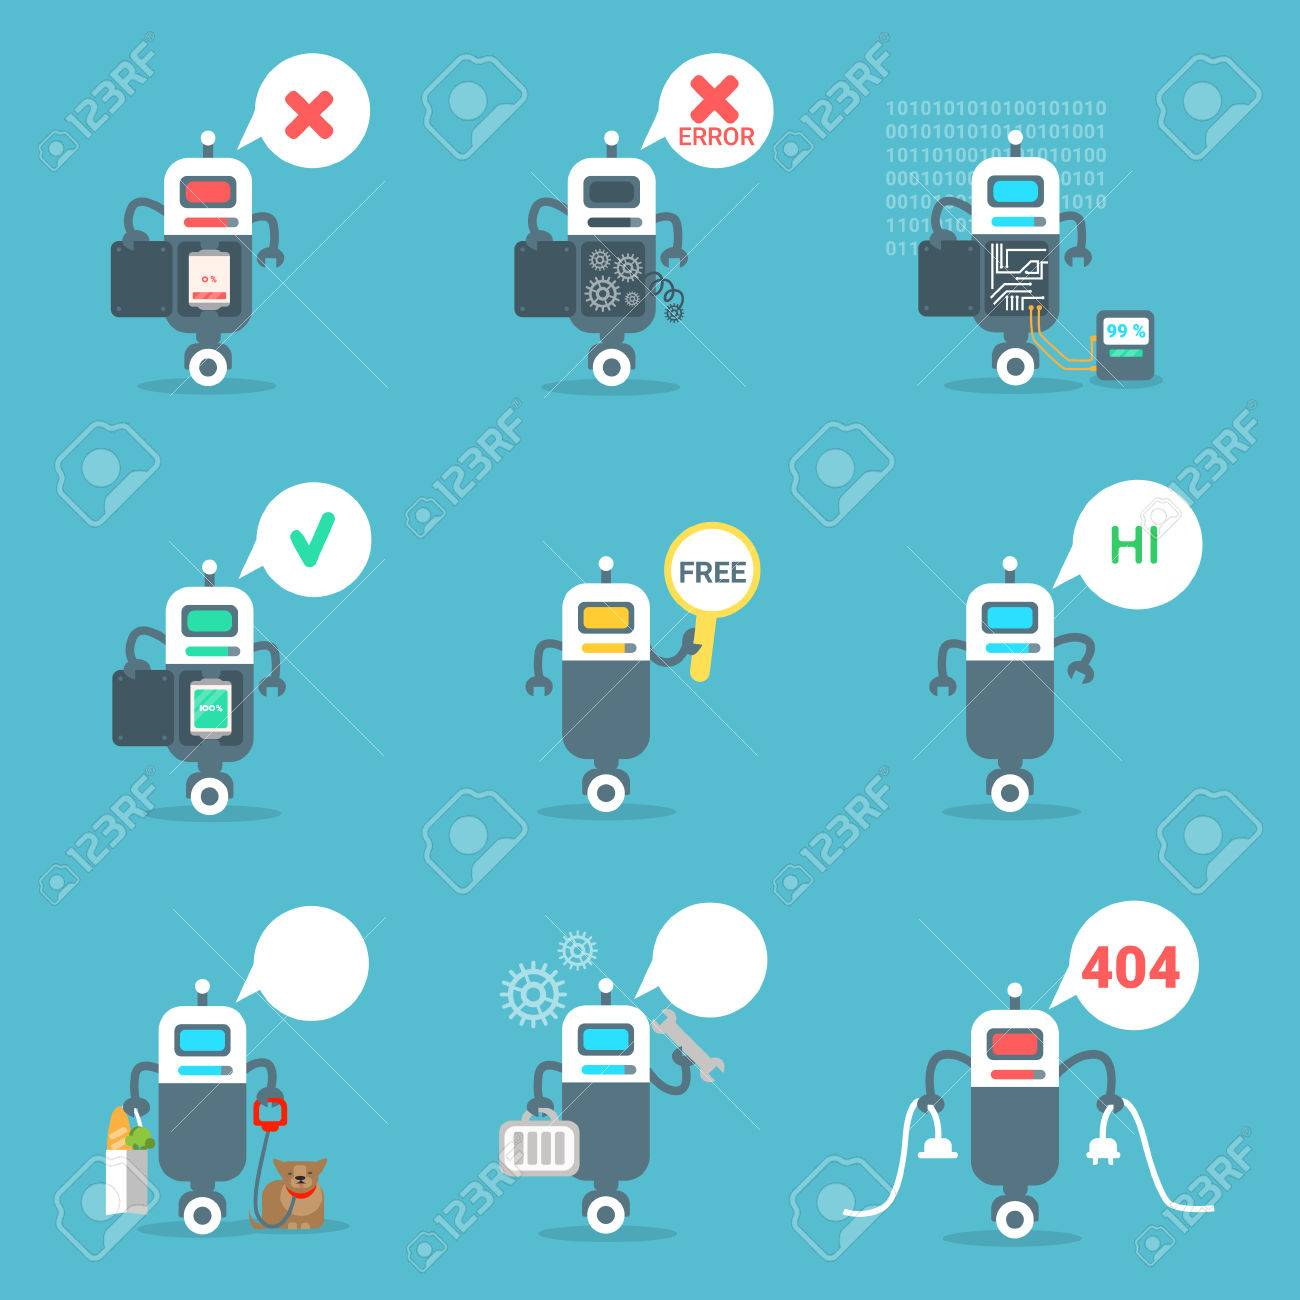 Modern Robots Icons Set Chat Bot Artificial Intelligence Technology Concept Flat Vector Illustration - 83996739